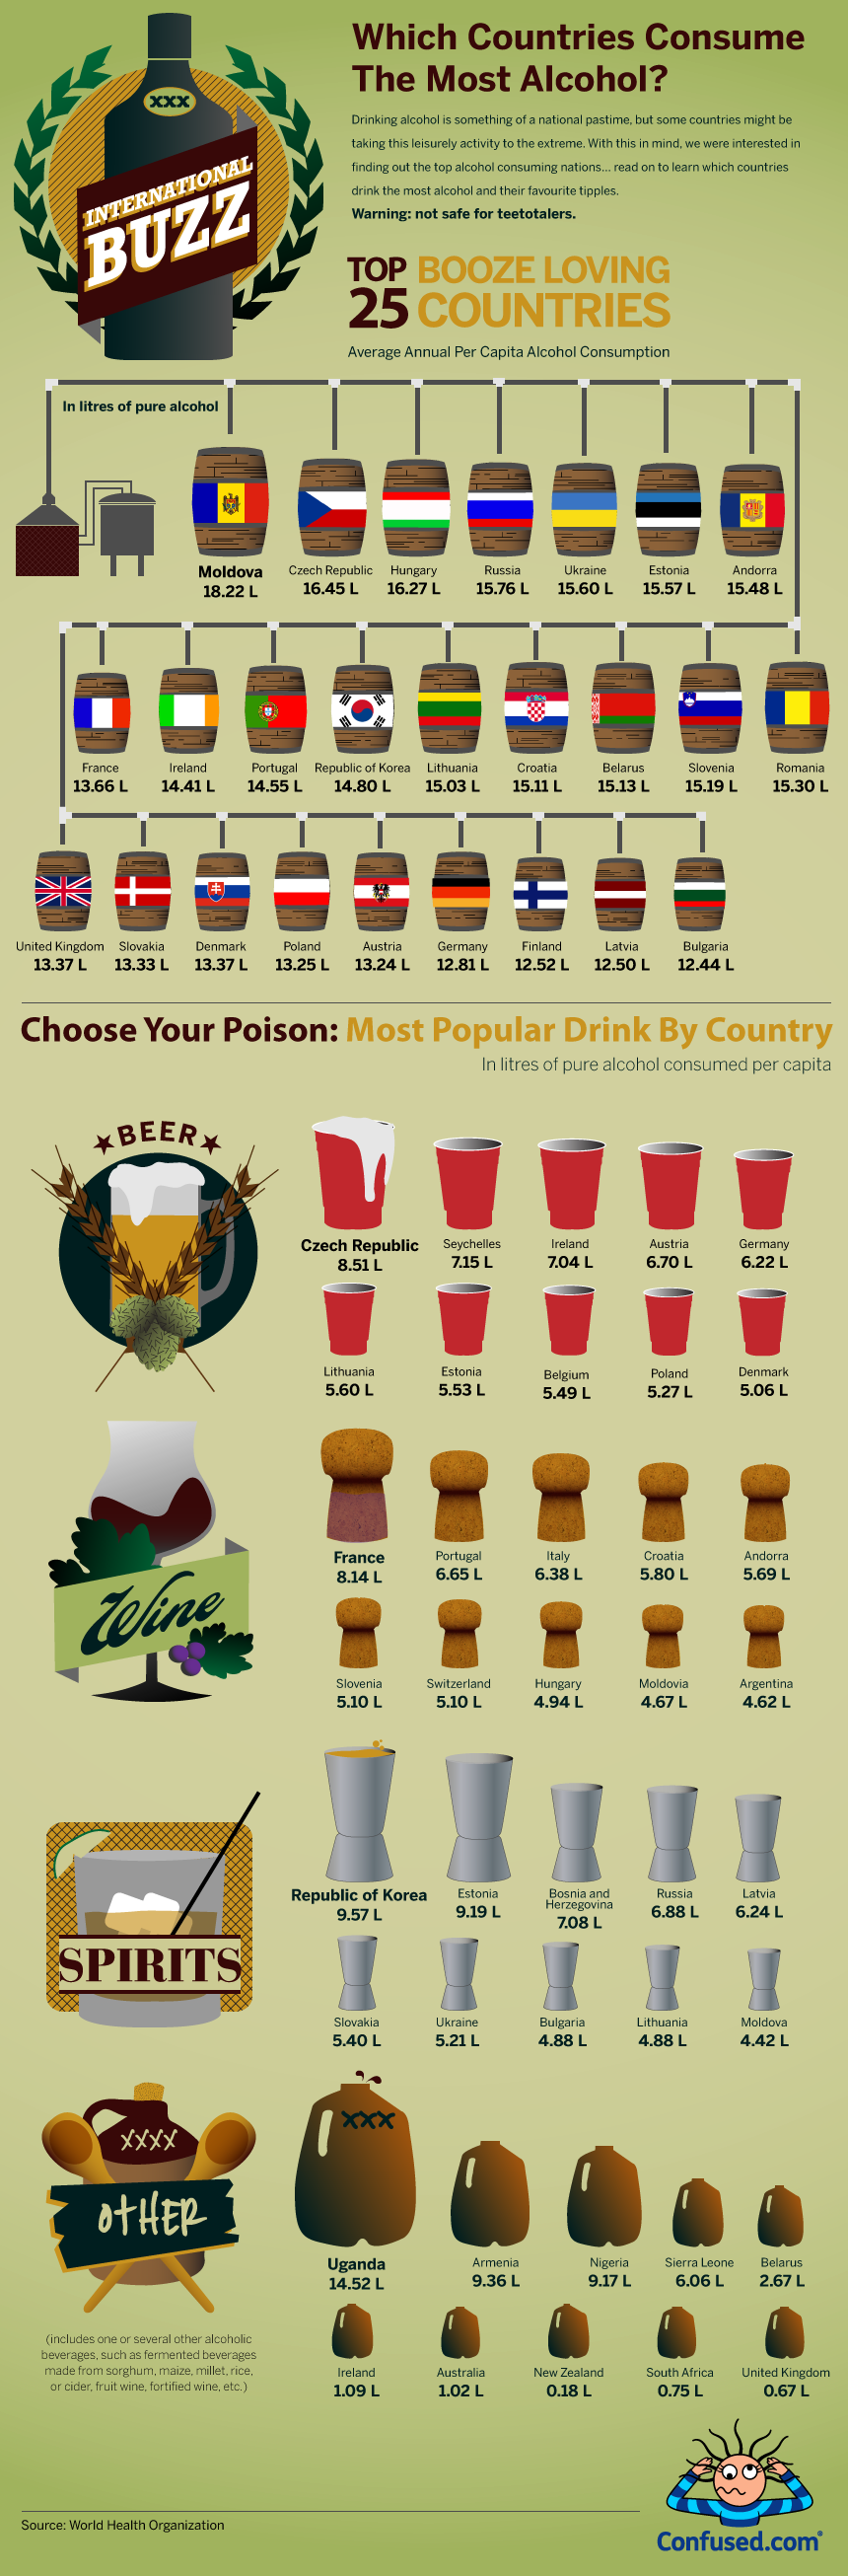 Booze Loving Countries